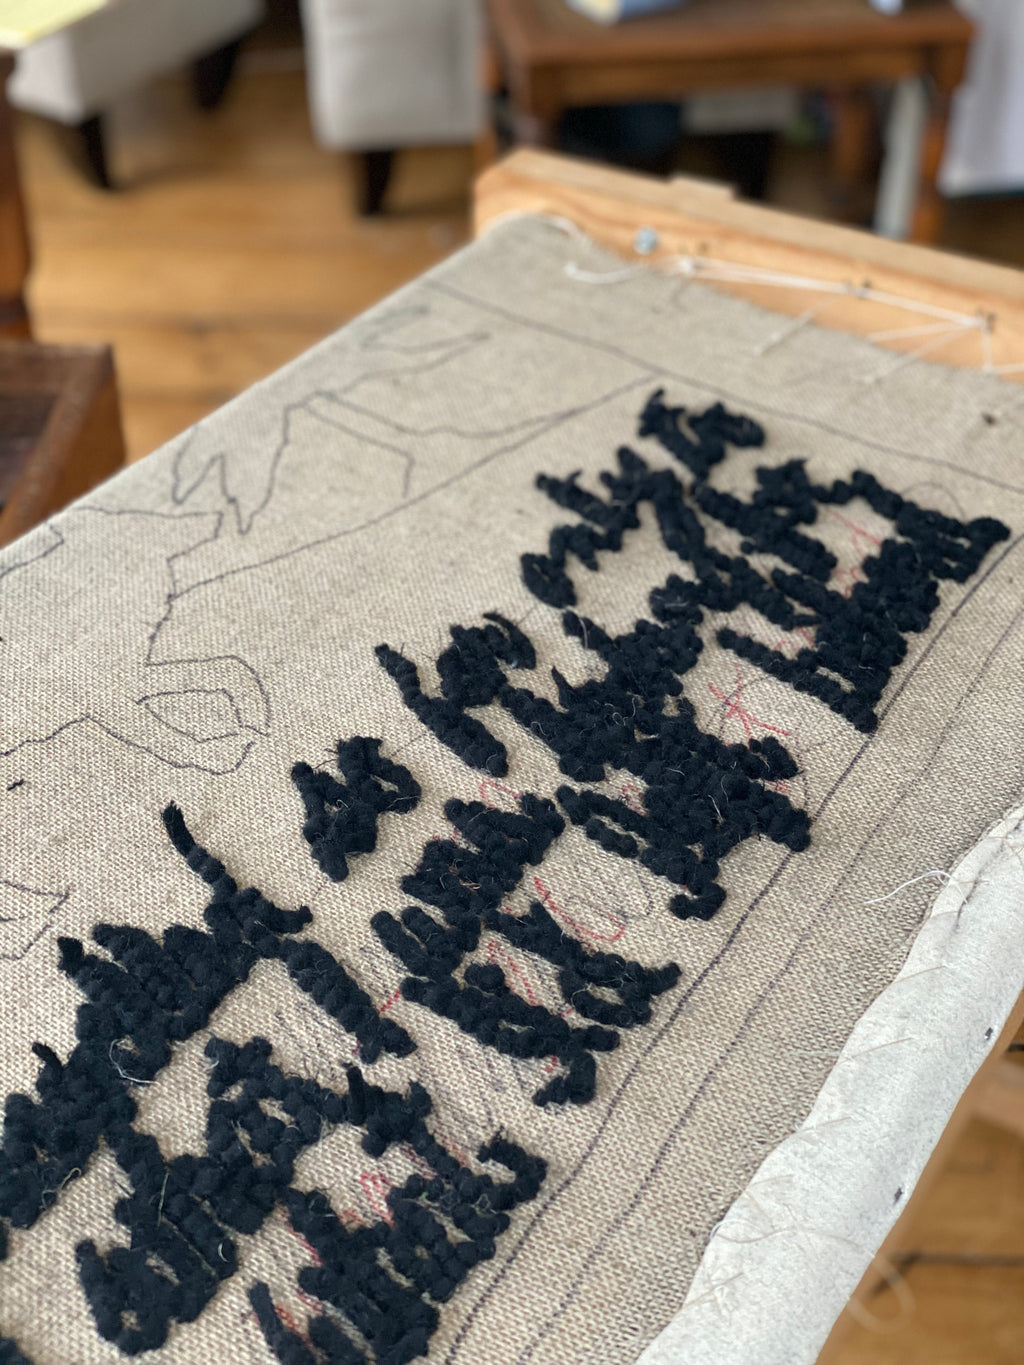 Tips for Finishing Hooked Rugs